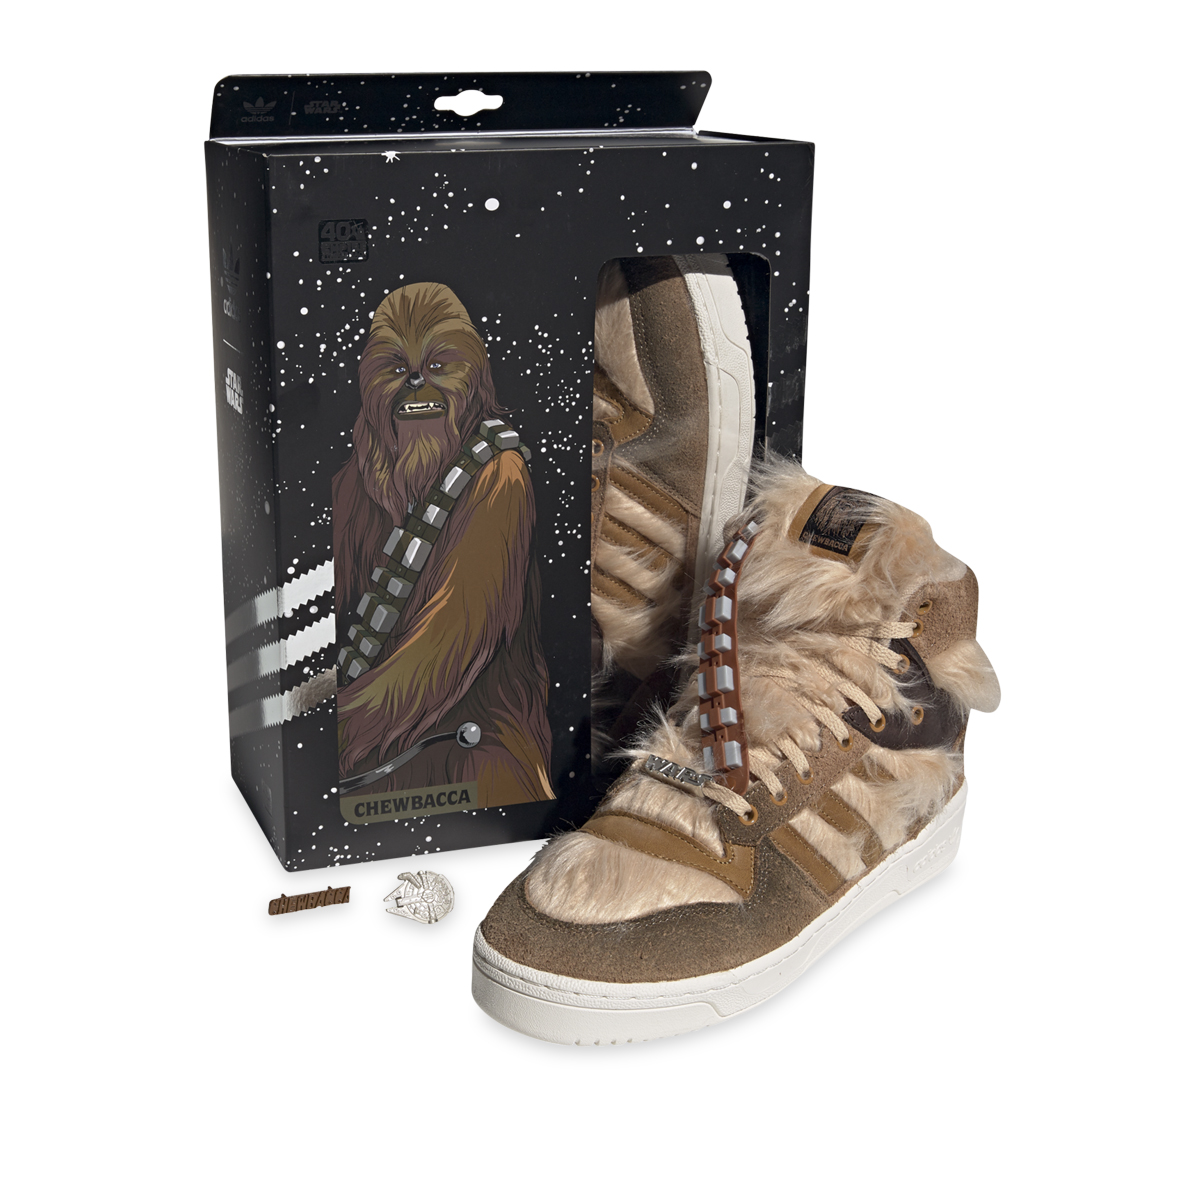 adidas Rivalry Hi Star Wars 'Chewbaca' Raw Desert/Mesa/Chalk White Back Box